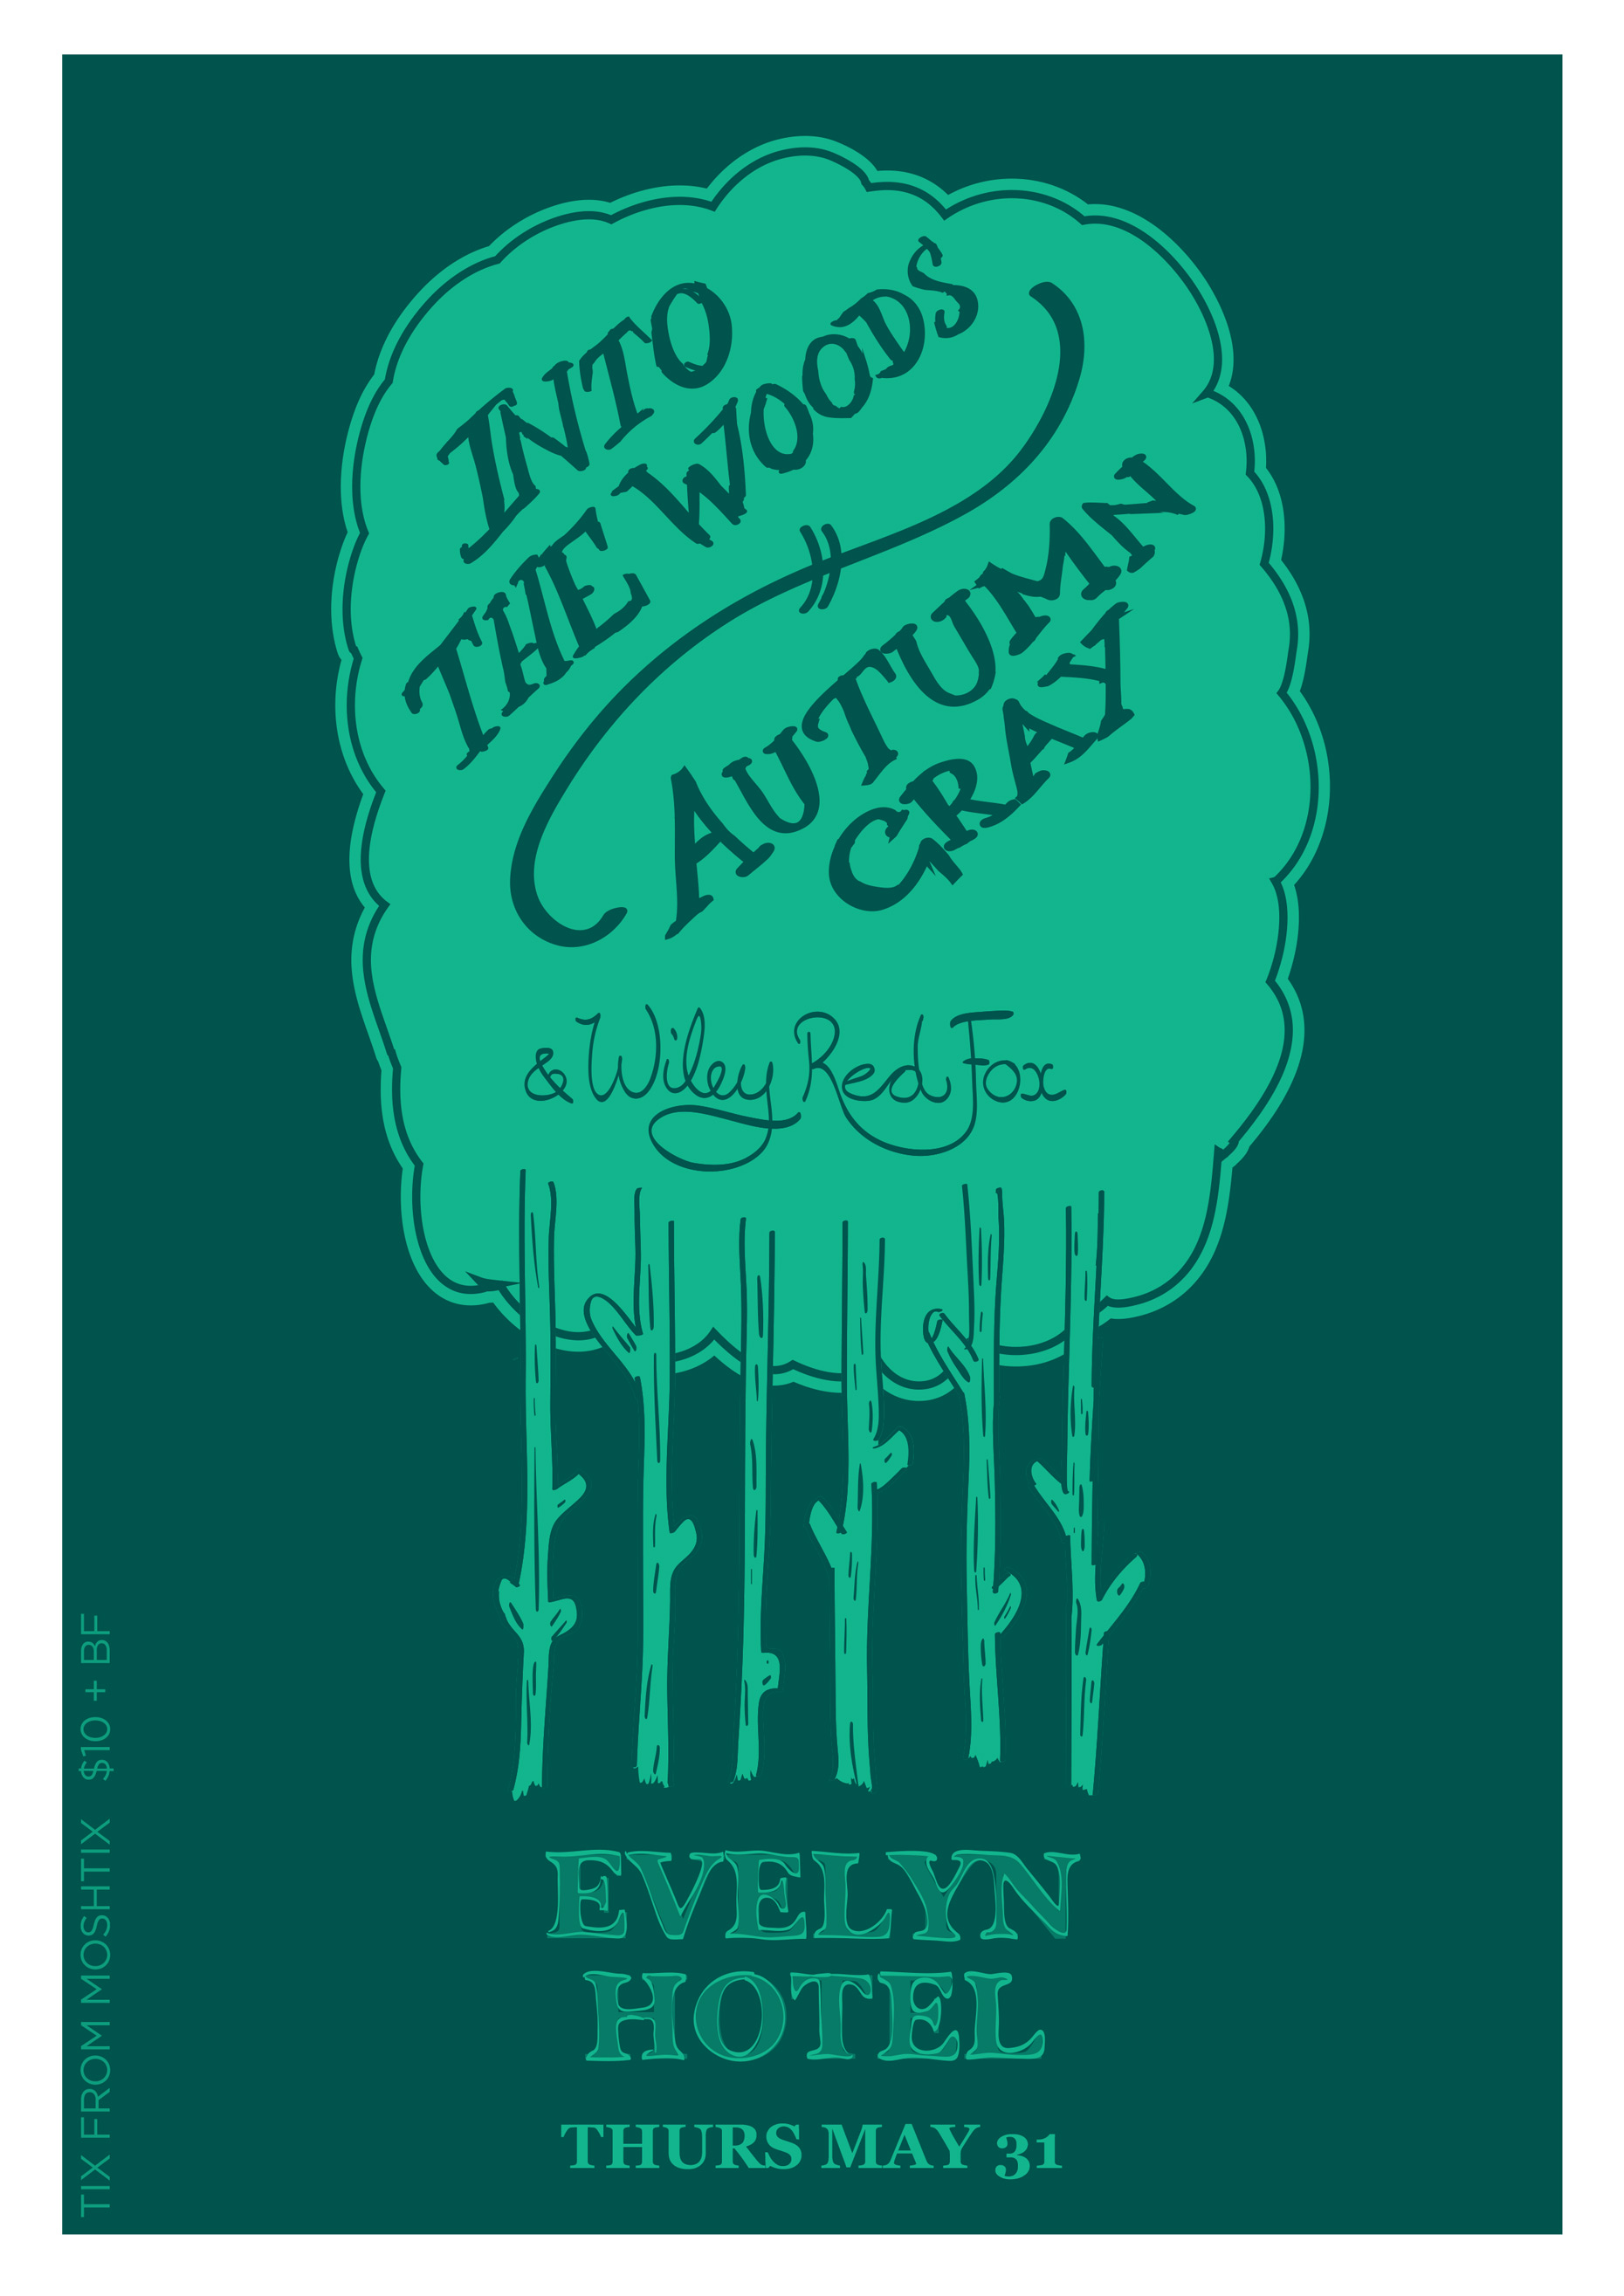 2012-05-31_evelyn_into_the_woods_poster.jpg